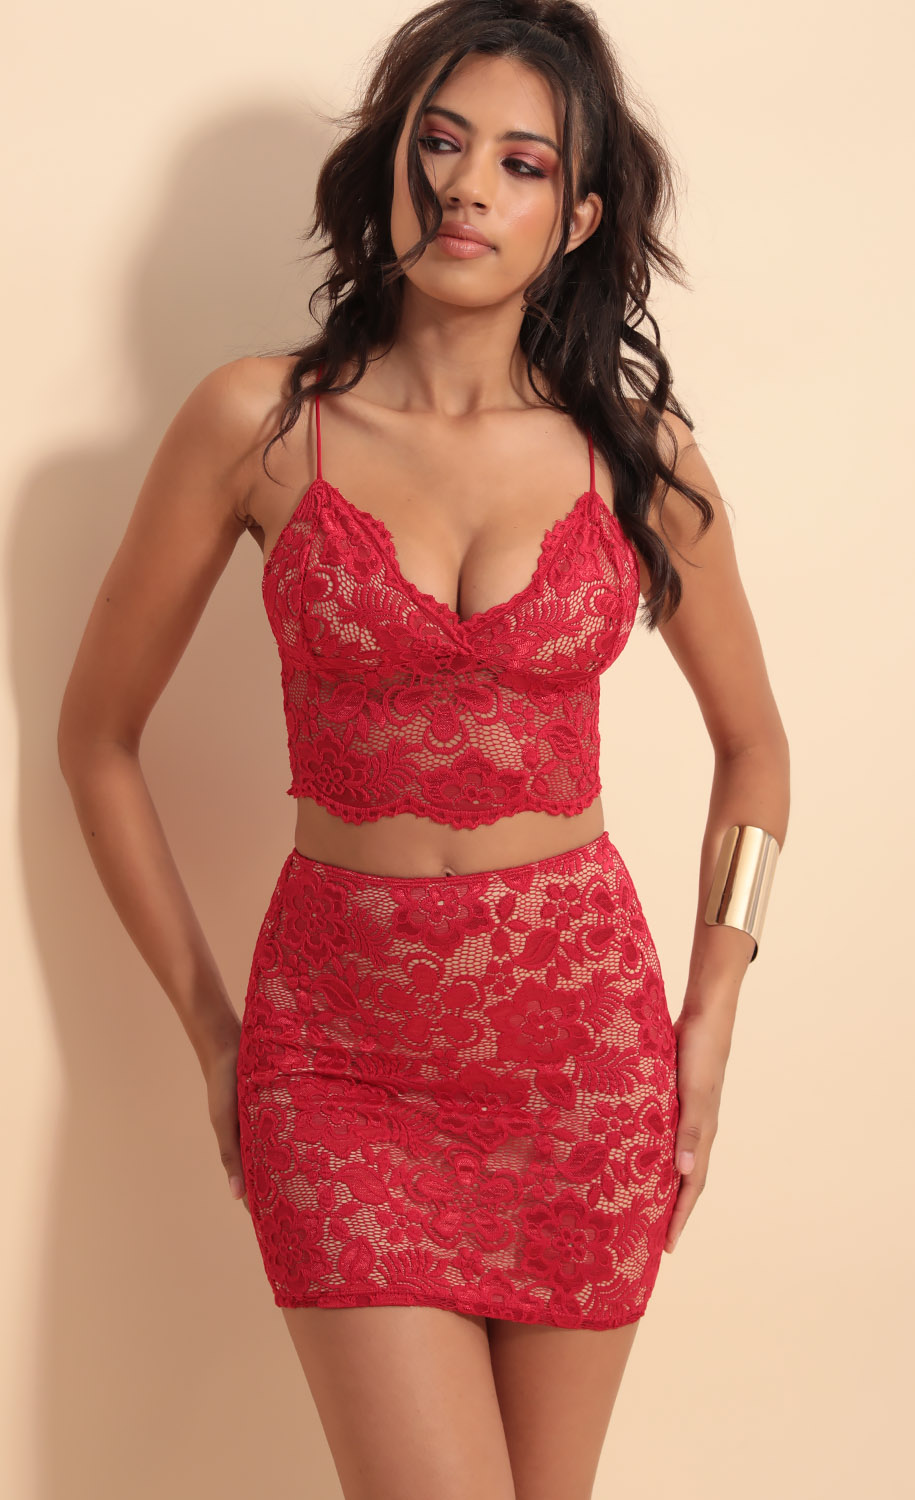 Pasadena Scallop Lace Set in Red